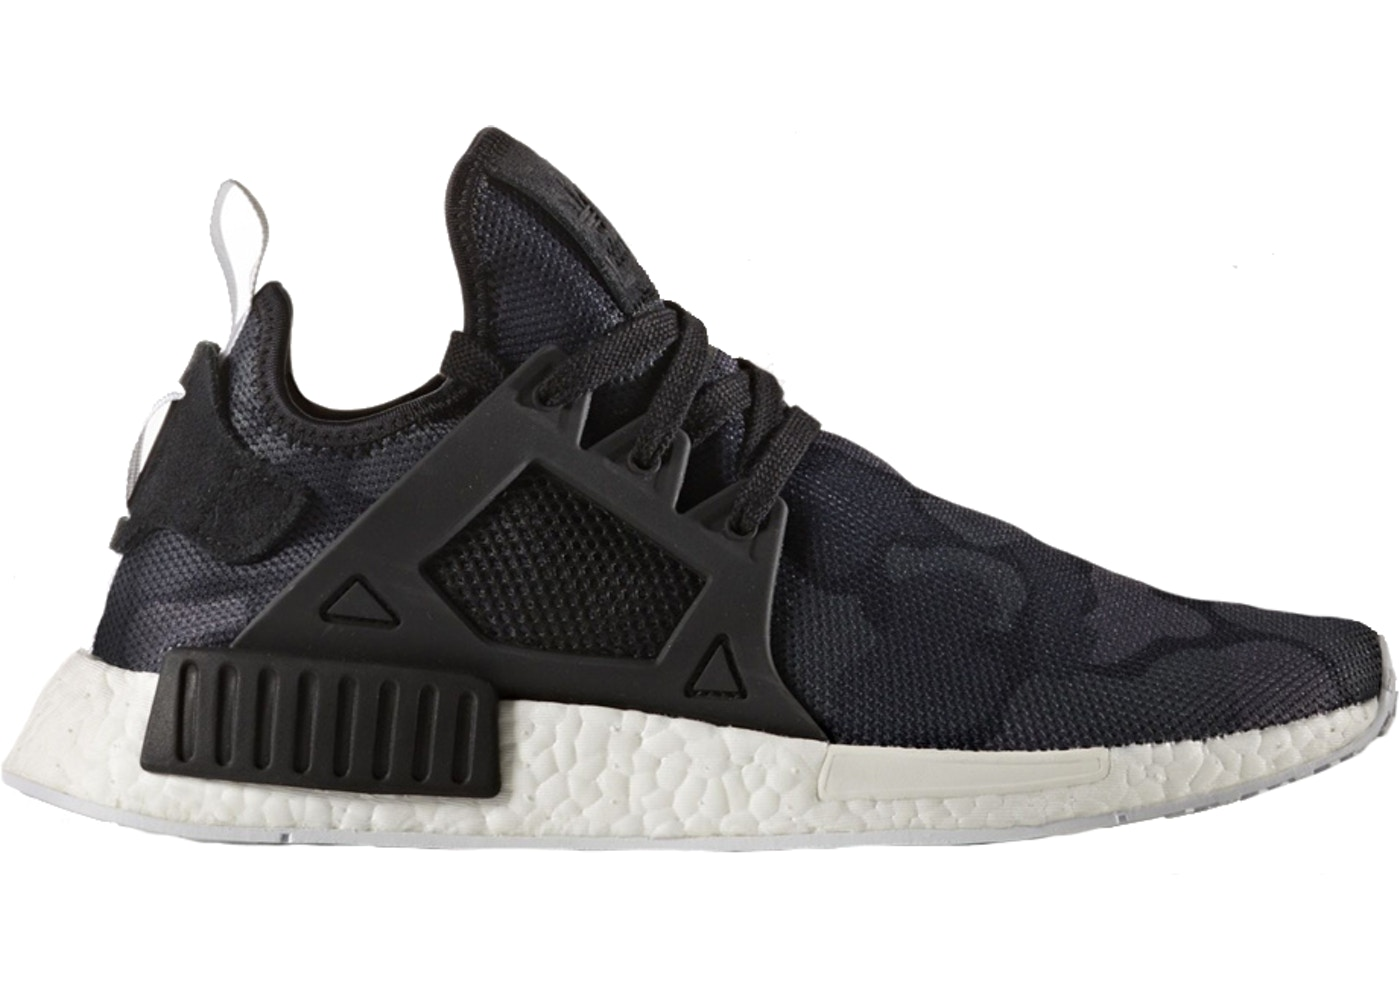 reputable site 26222 86404 Buy adidas NMD XR1 Shoes & Deadstock Sneakers